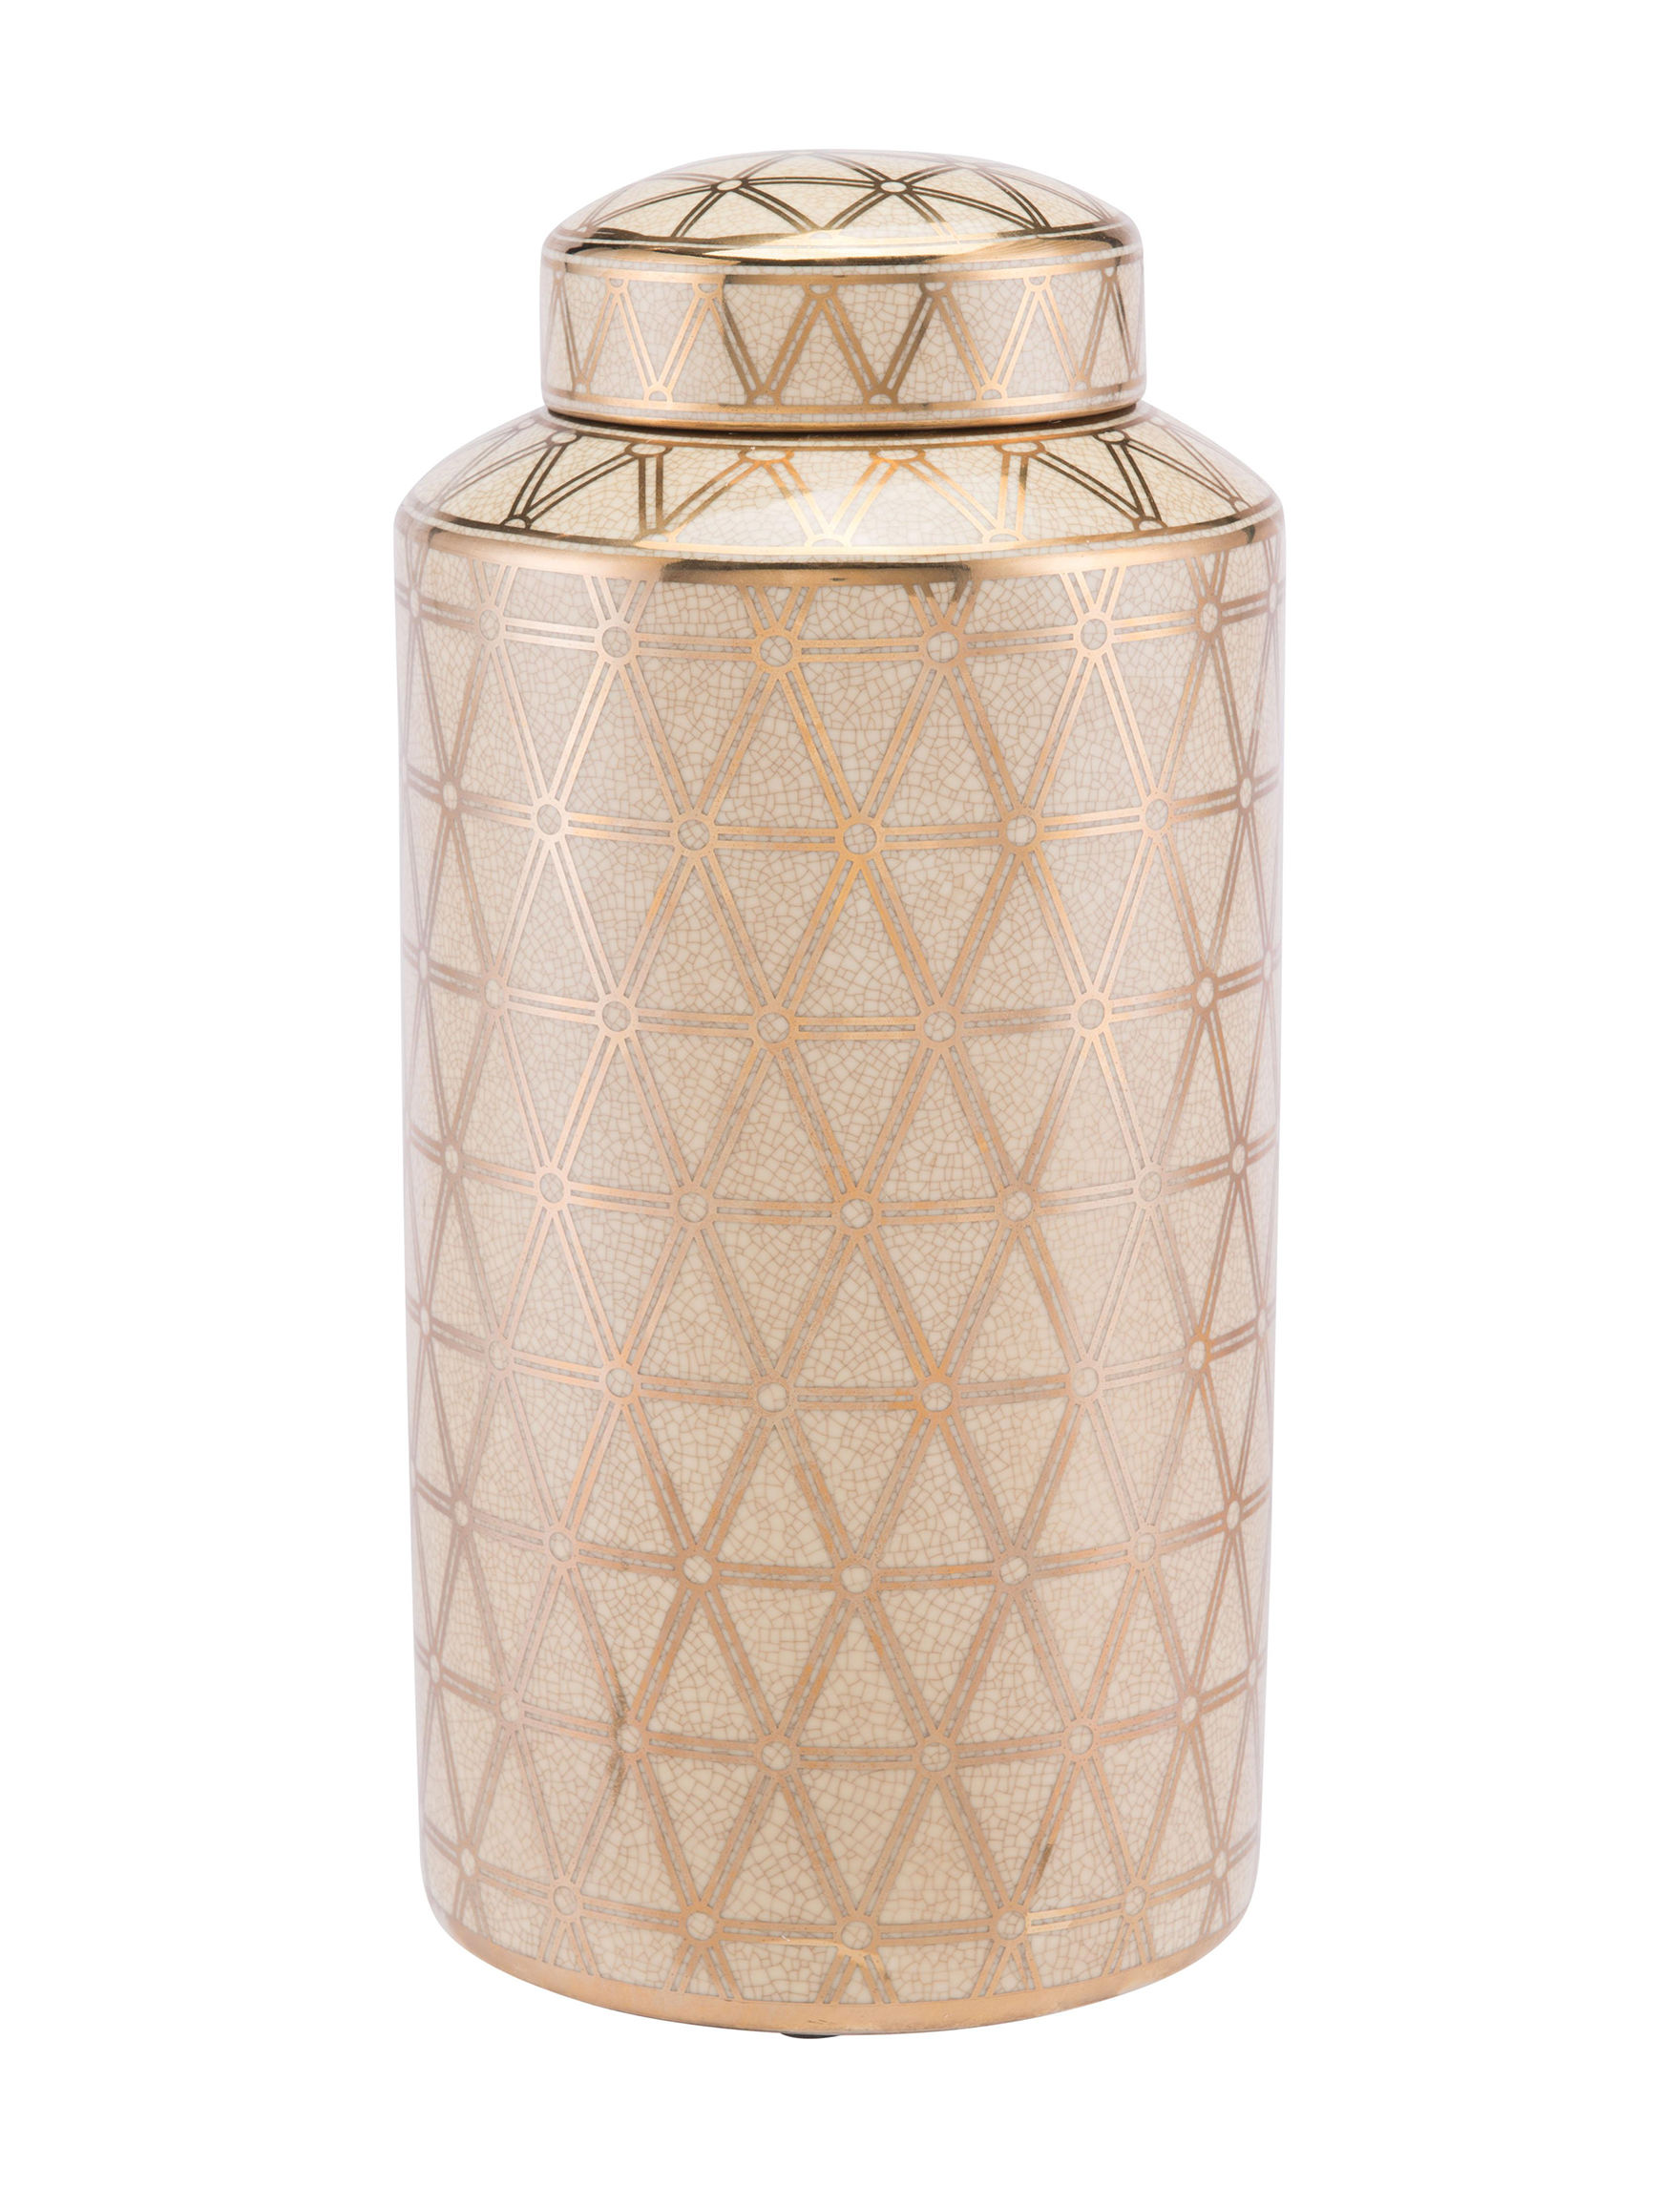 Zuo Modern Gold Decorative Objects Home Accents